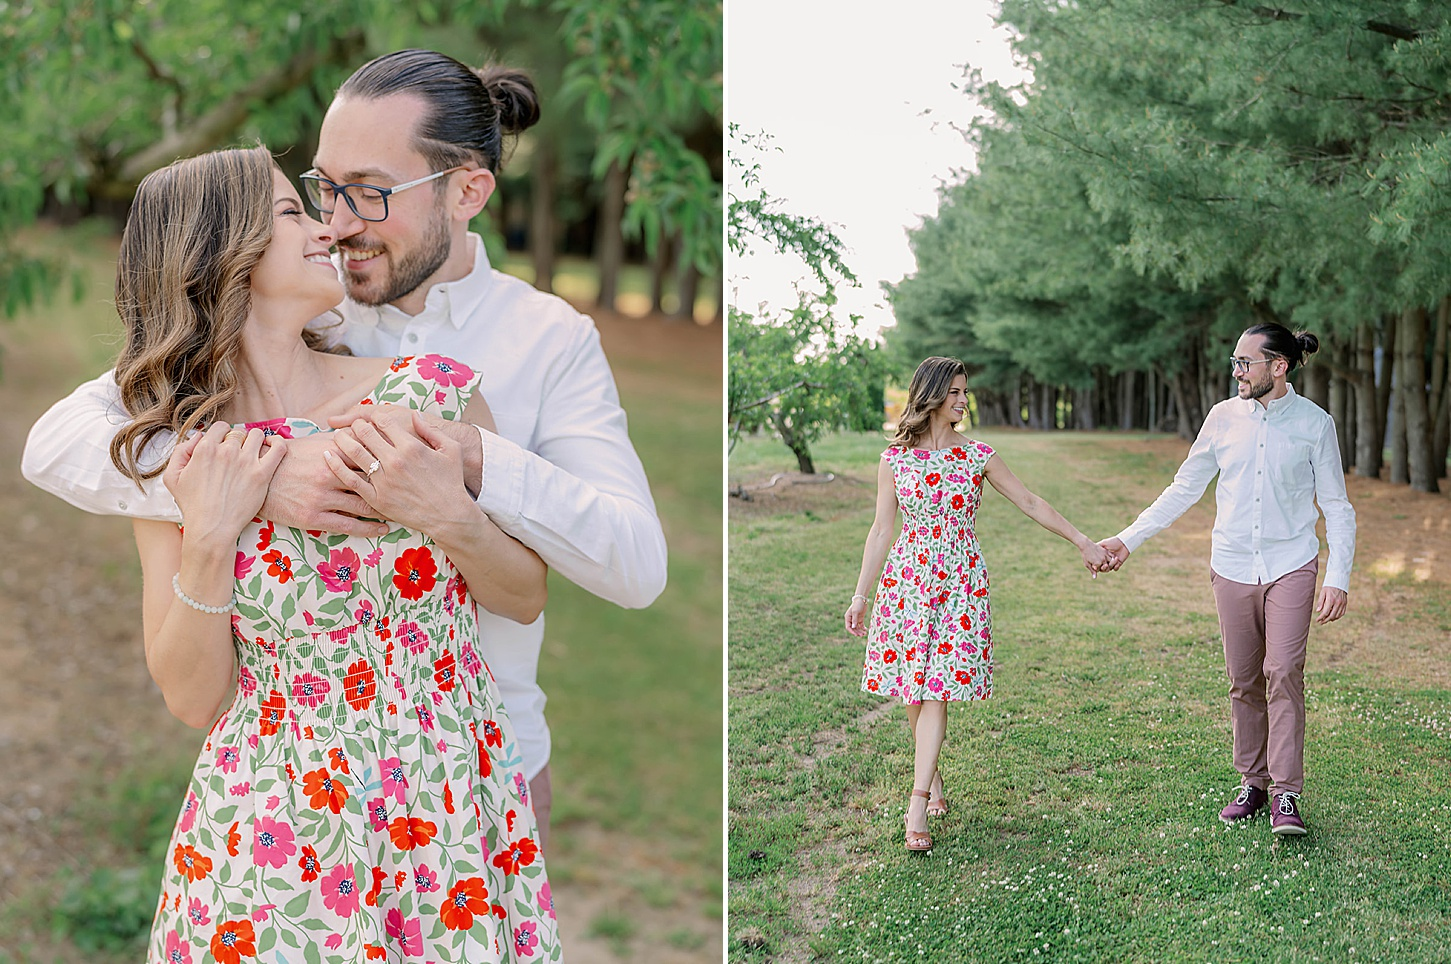 Bast Brothers Garden Center Mullica Hill NJ Engagement Photography by Magdalena Studios 0002